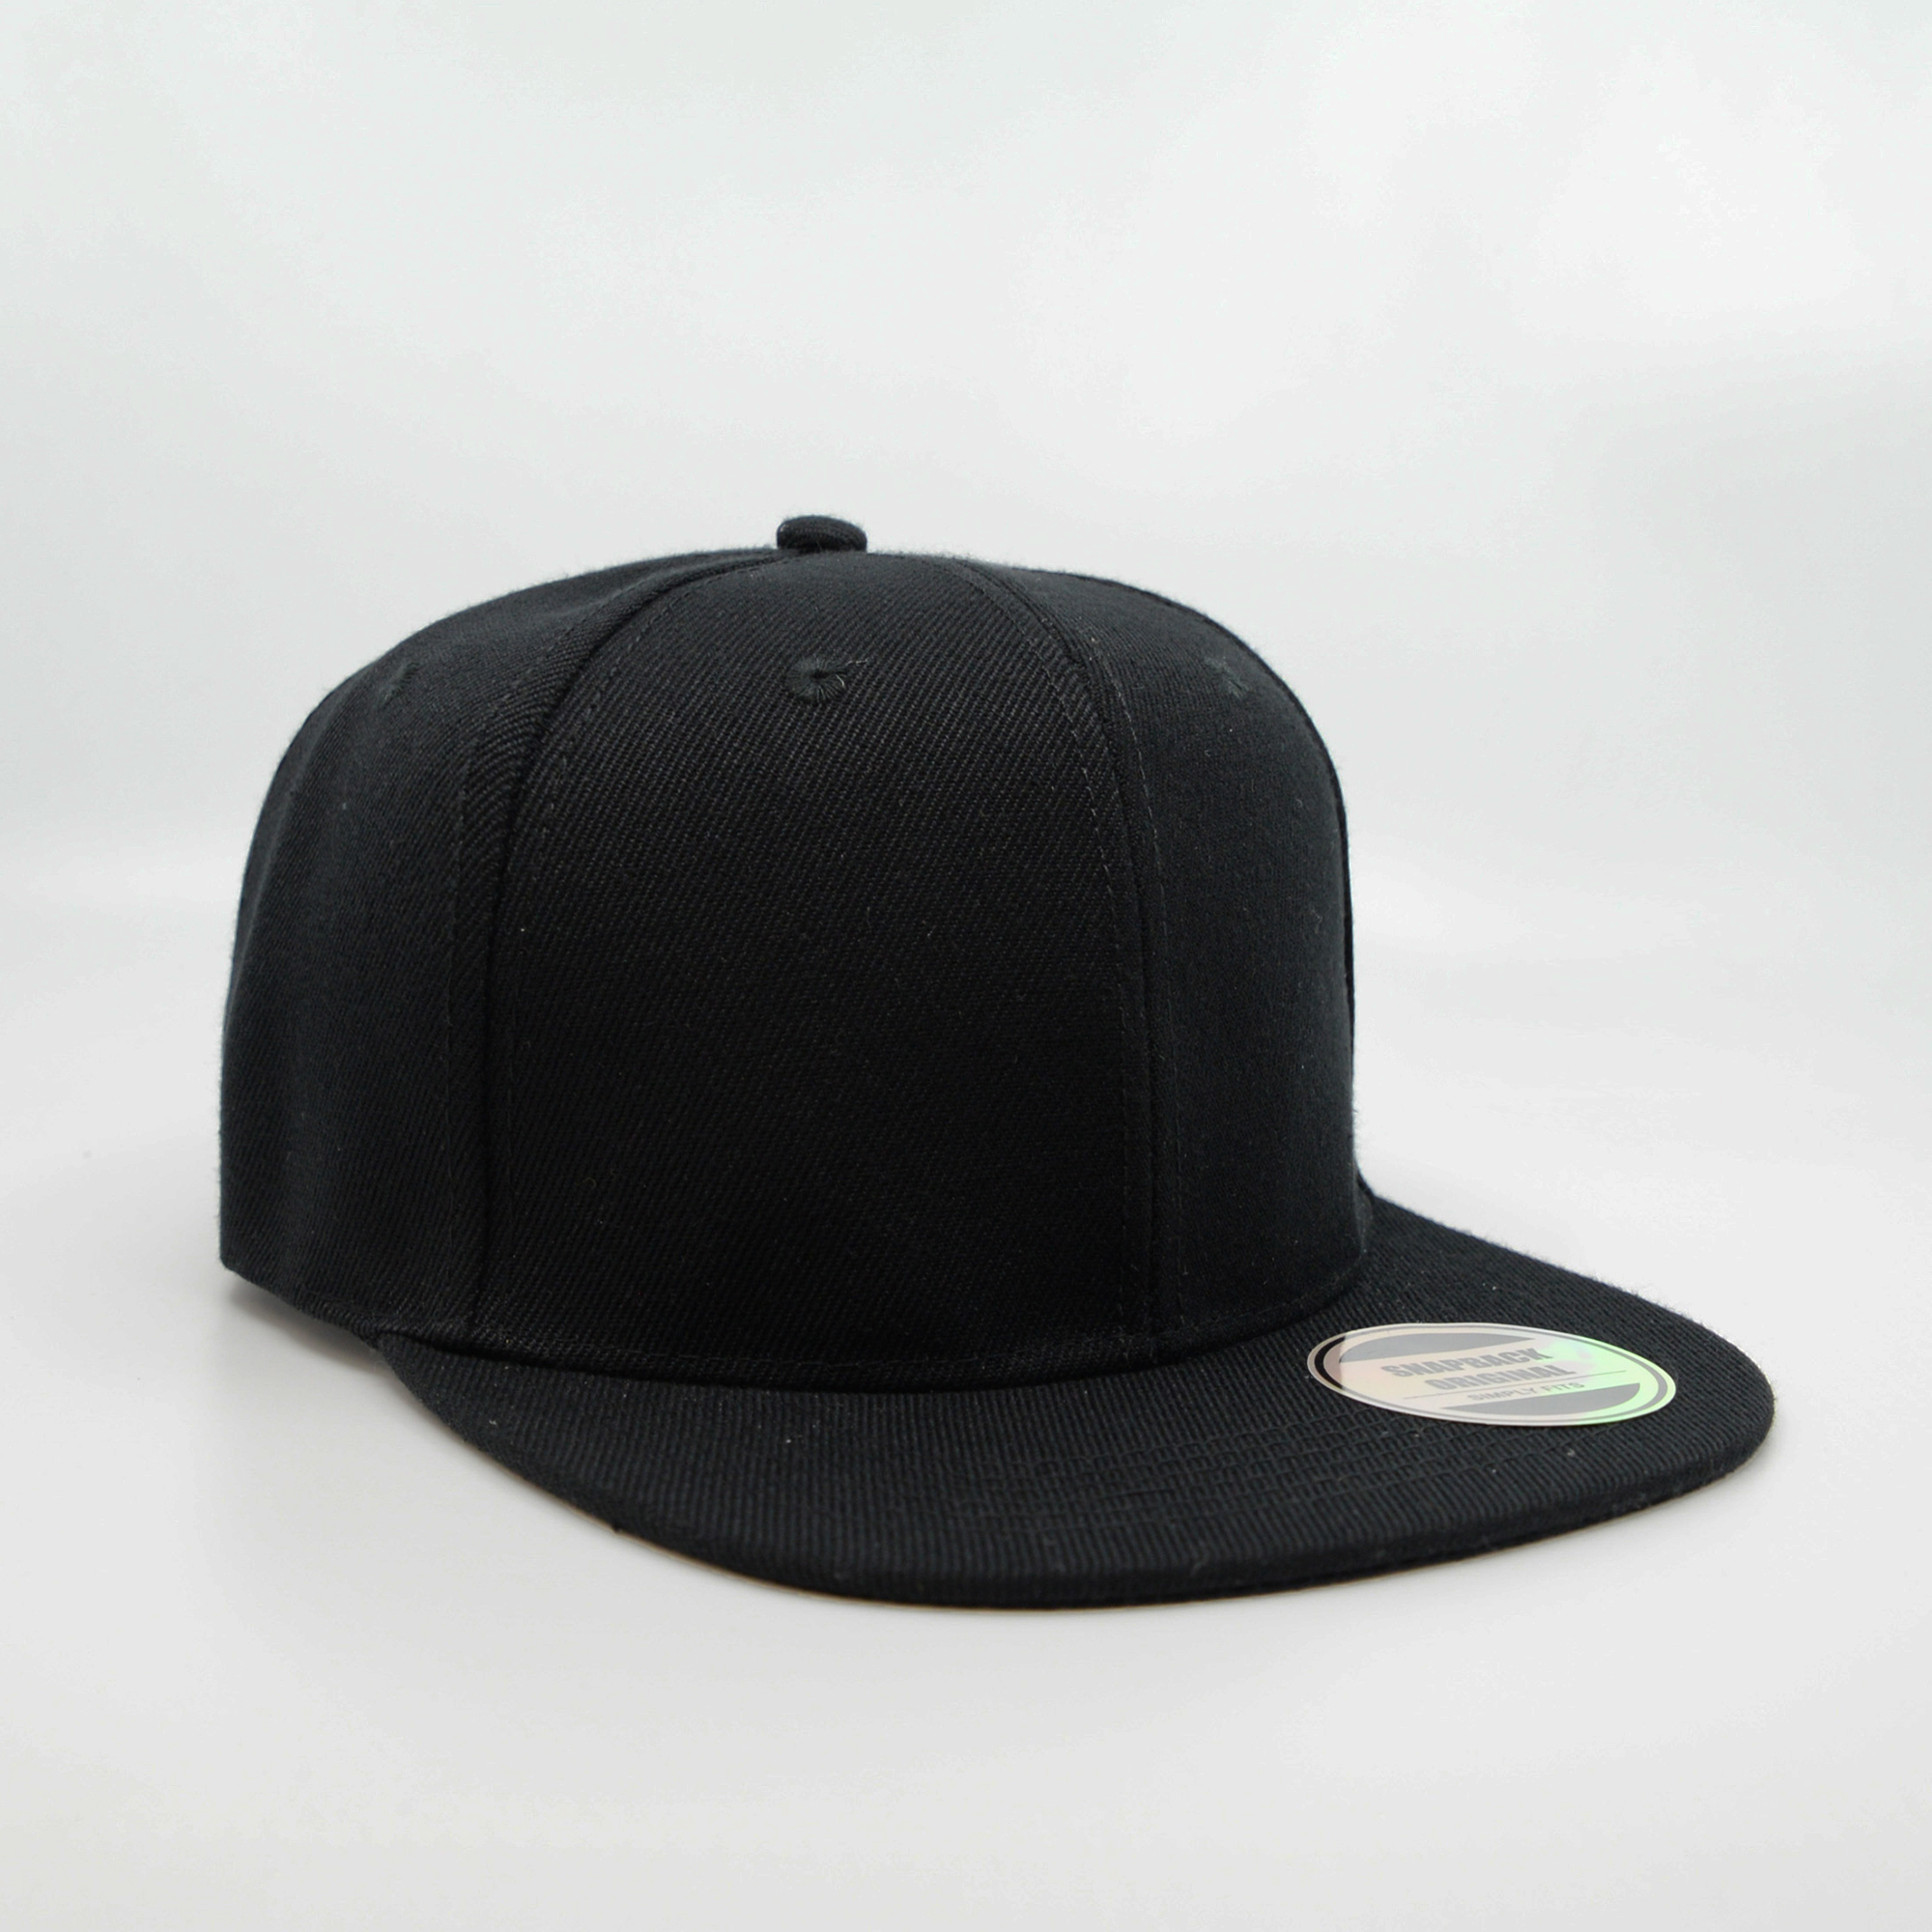 HW24 Snap Back Original